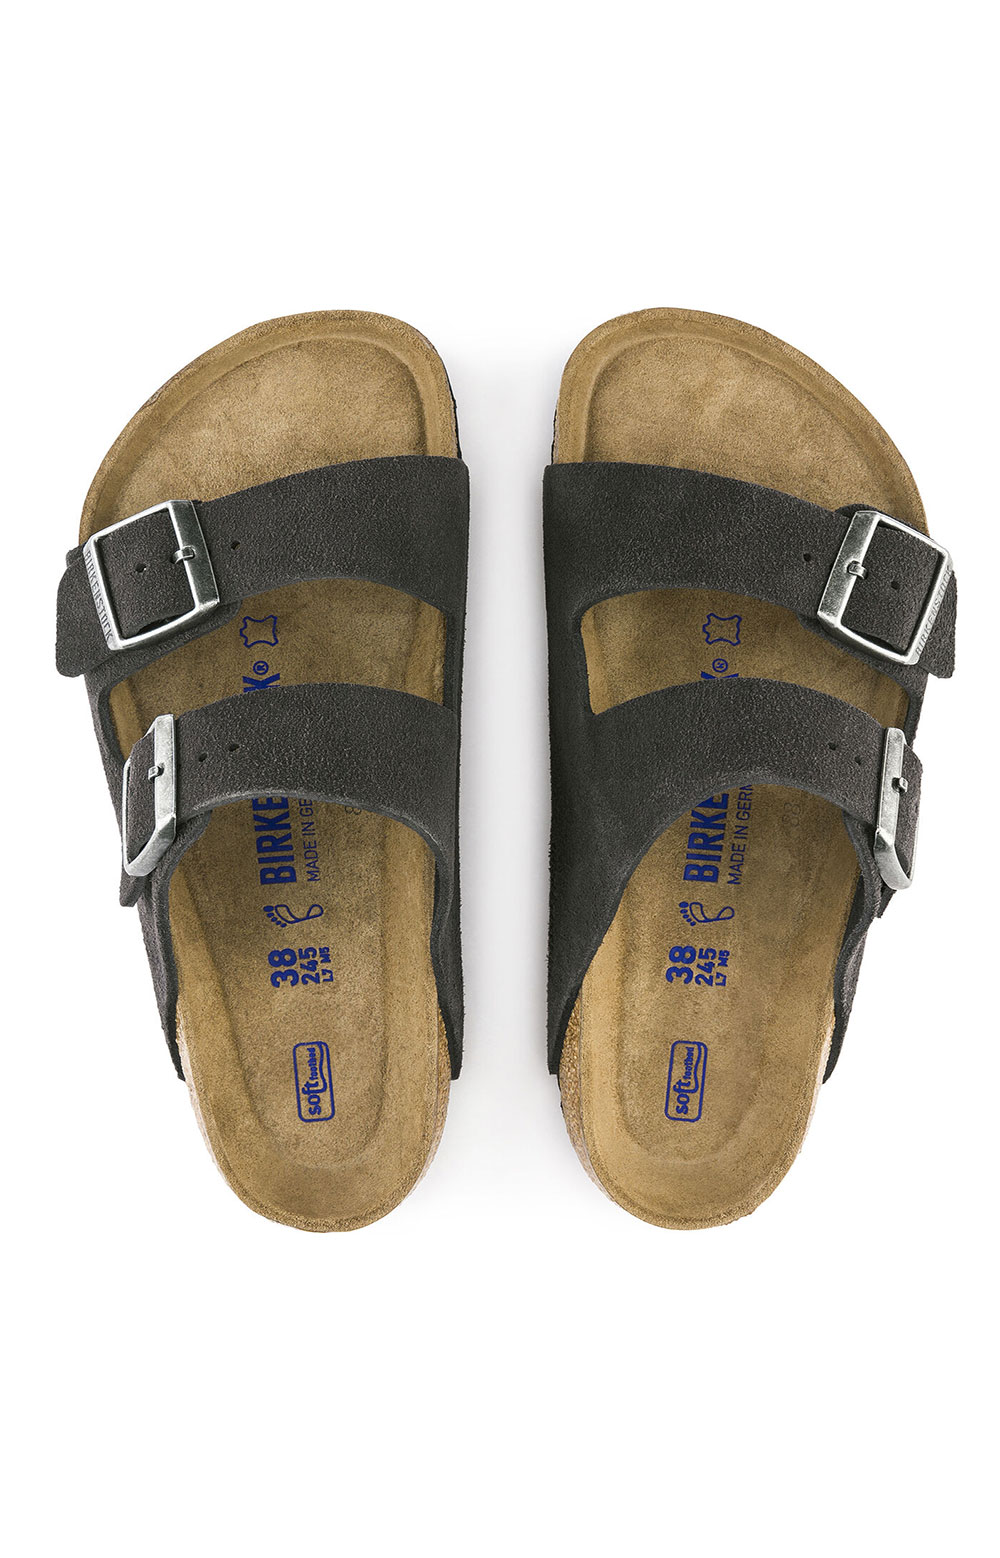 (0552321) Arizona Sandals - Velvet Grey  2